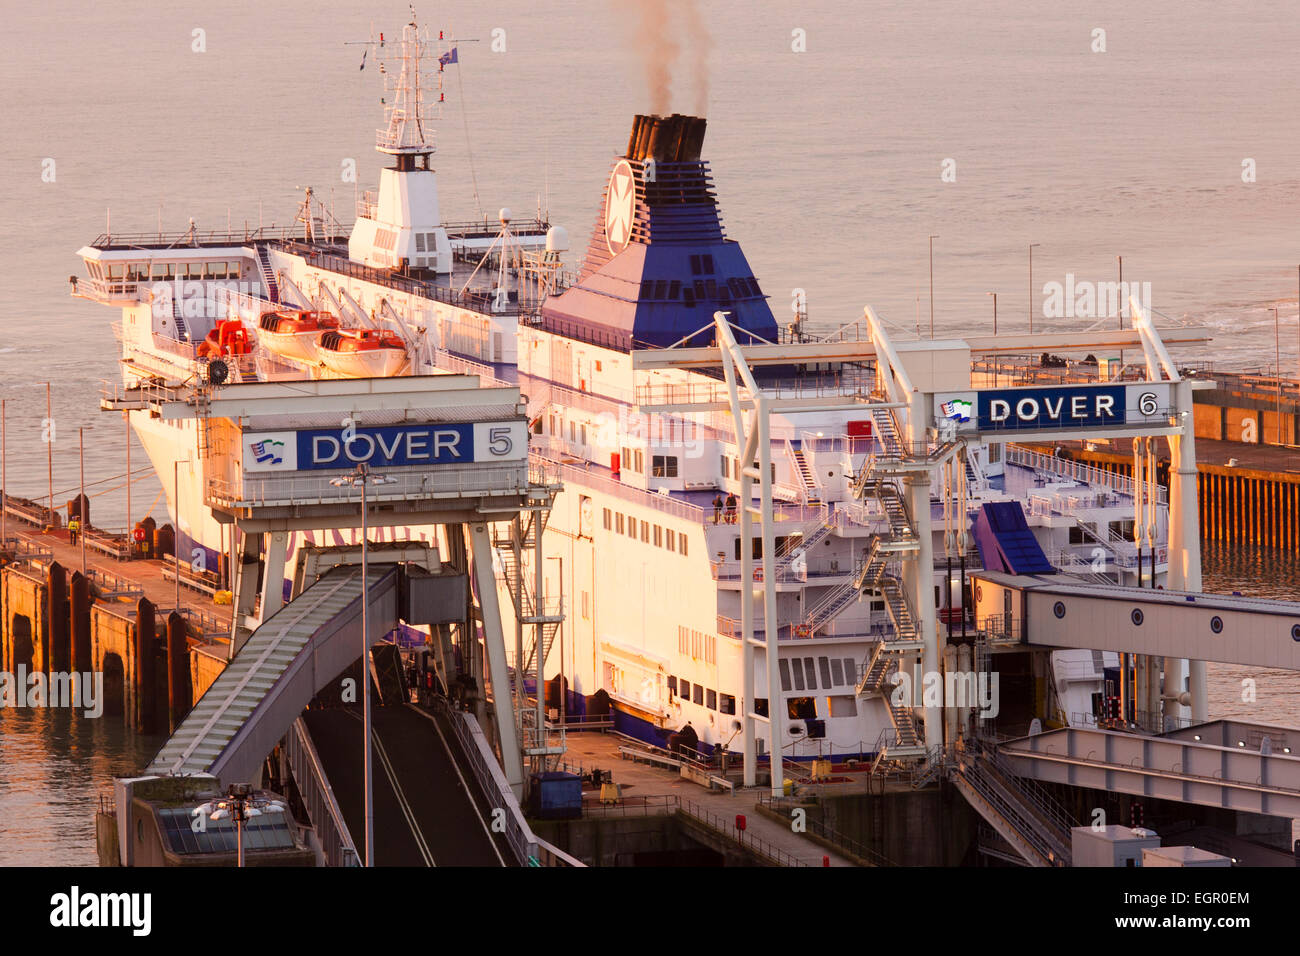 England, Dover. English Channel. Dawn. Car ferry docked stern first, loaded and ready to depart, ship lit up by - Stock Image